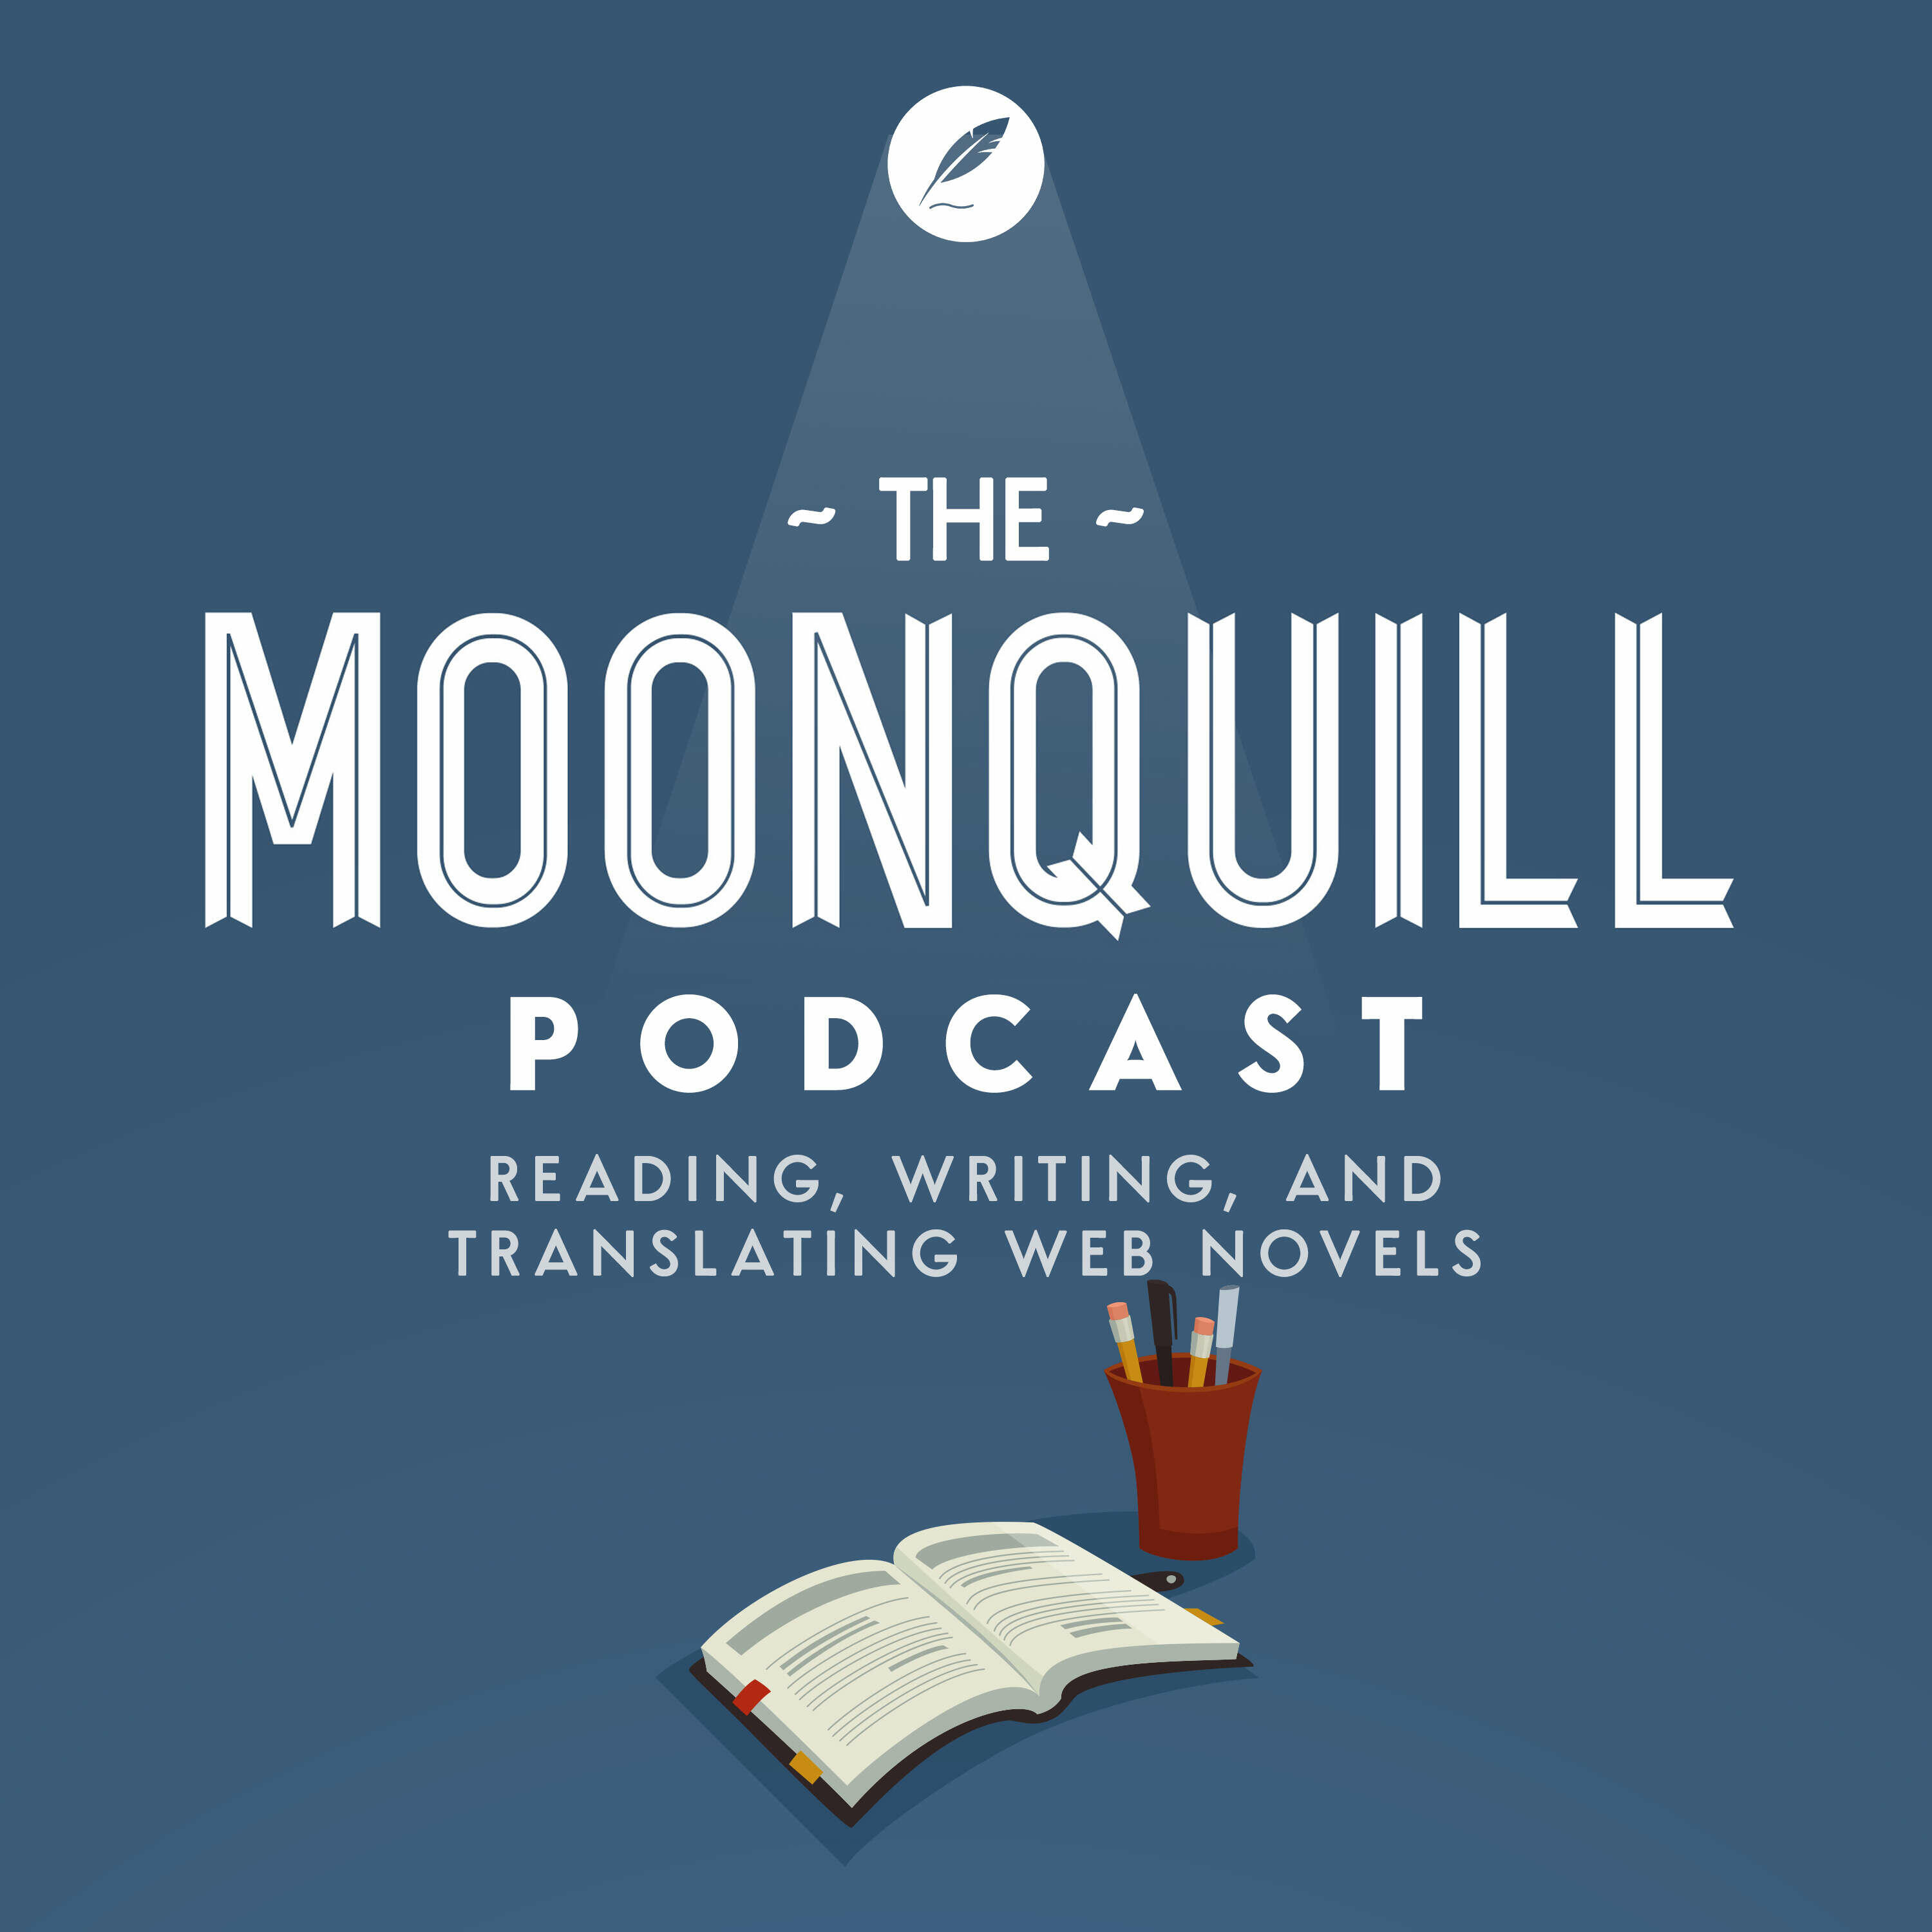 MoonQuill